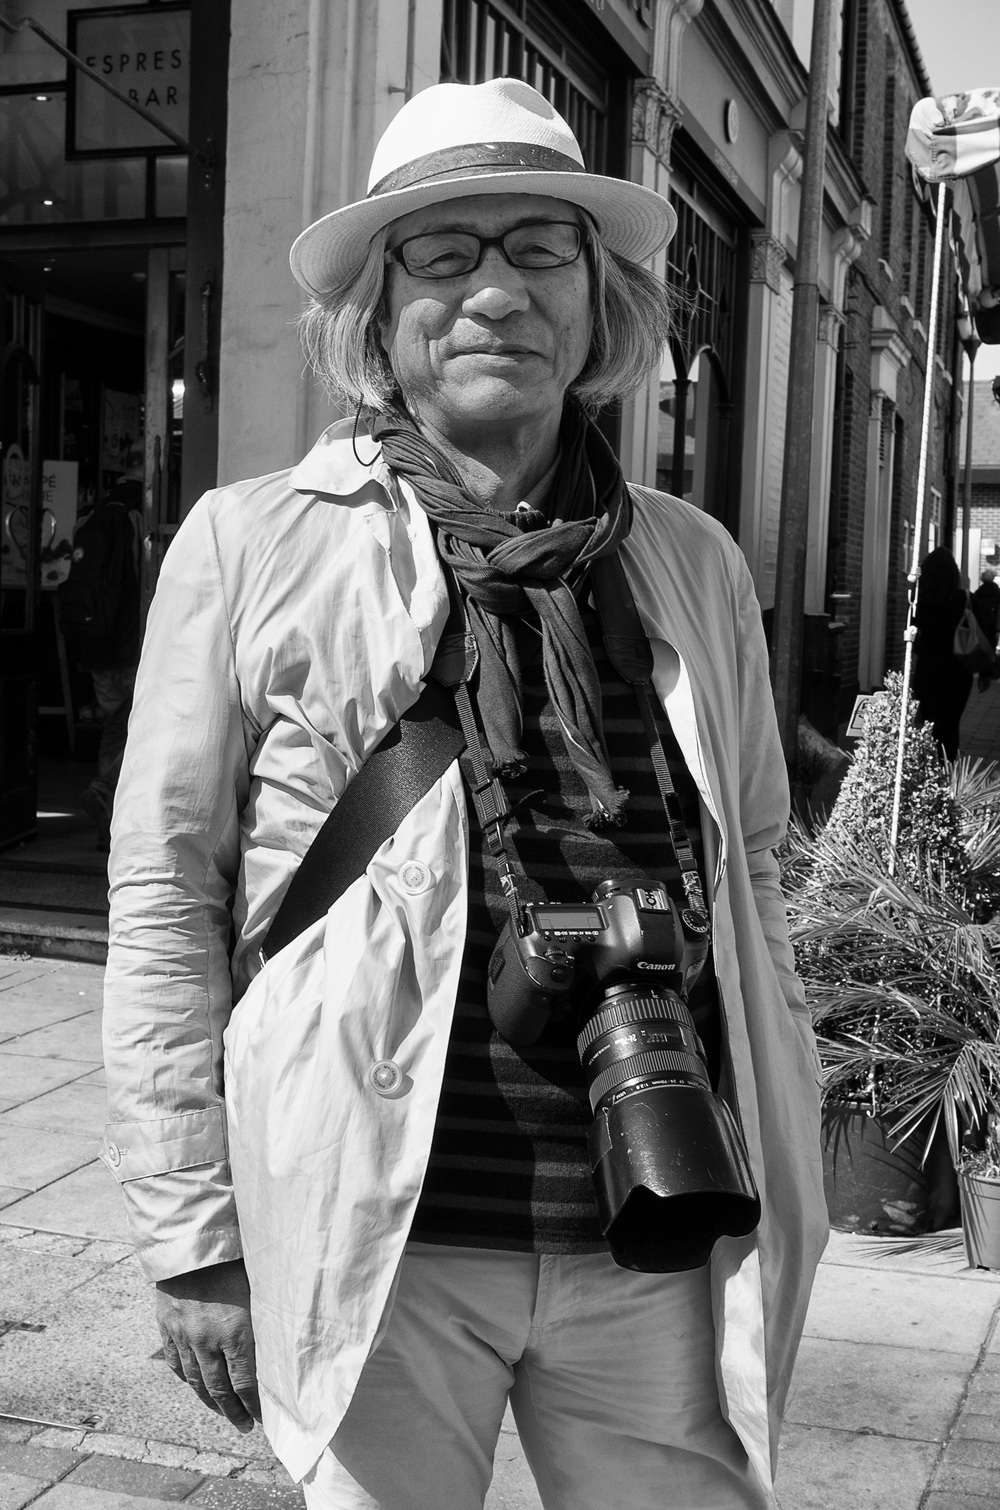 This impressive gentleman is a true camera buff, owner of several Leicas in addition to his Canon workhorse, and loving every minute of his travel to furthest Chiswick